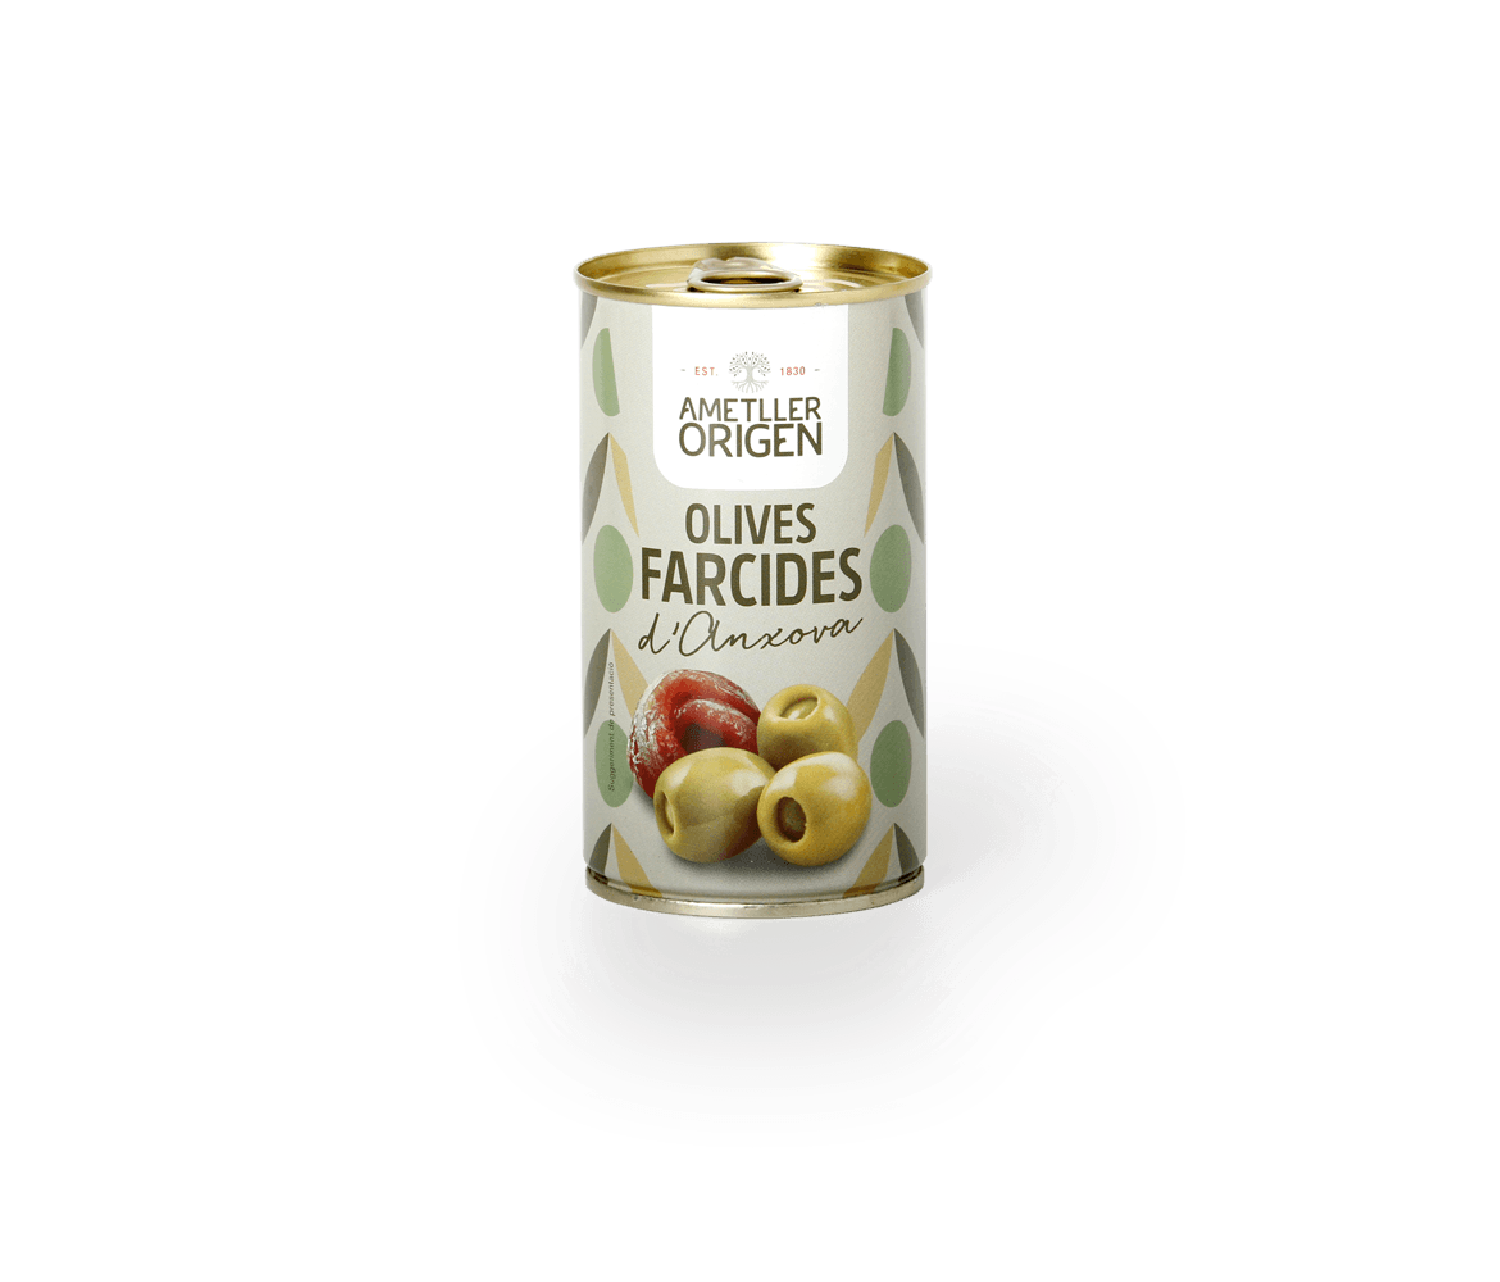 Olives farcides d'anxova AO 150g